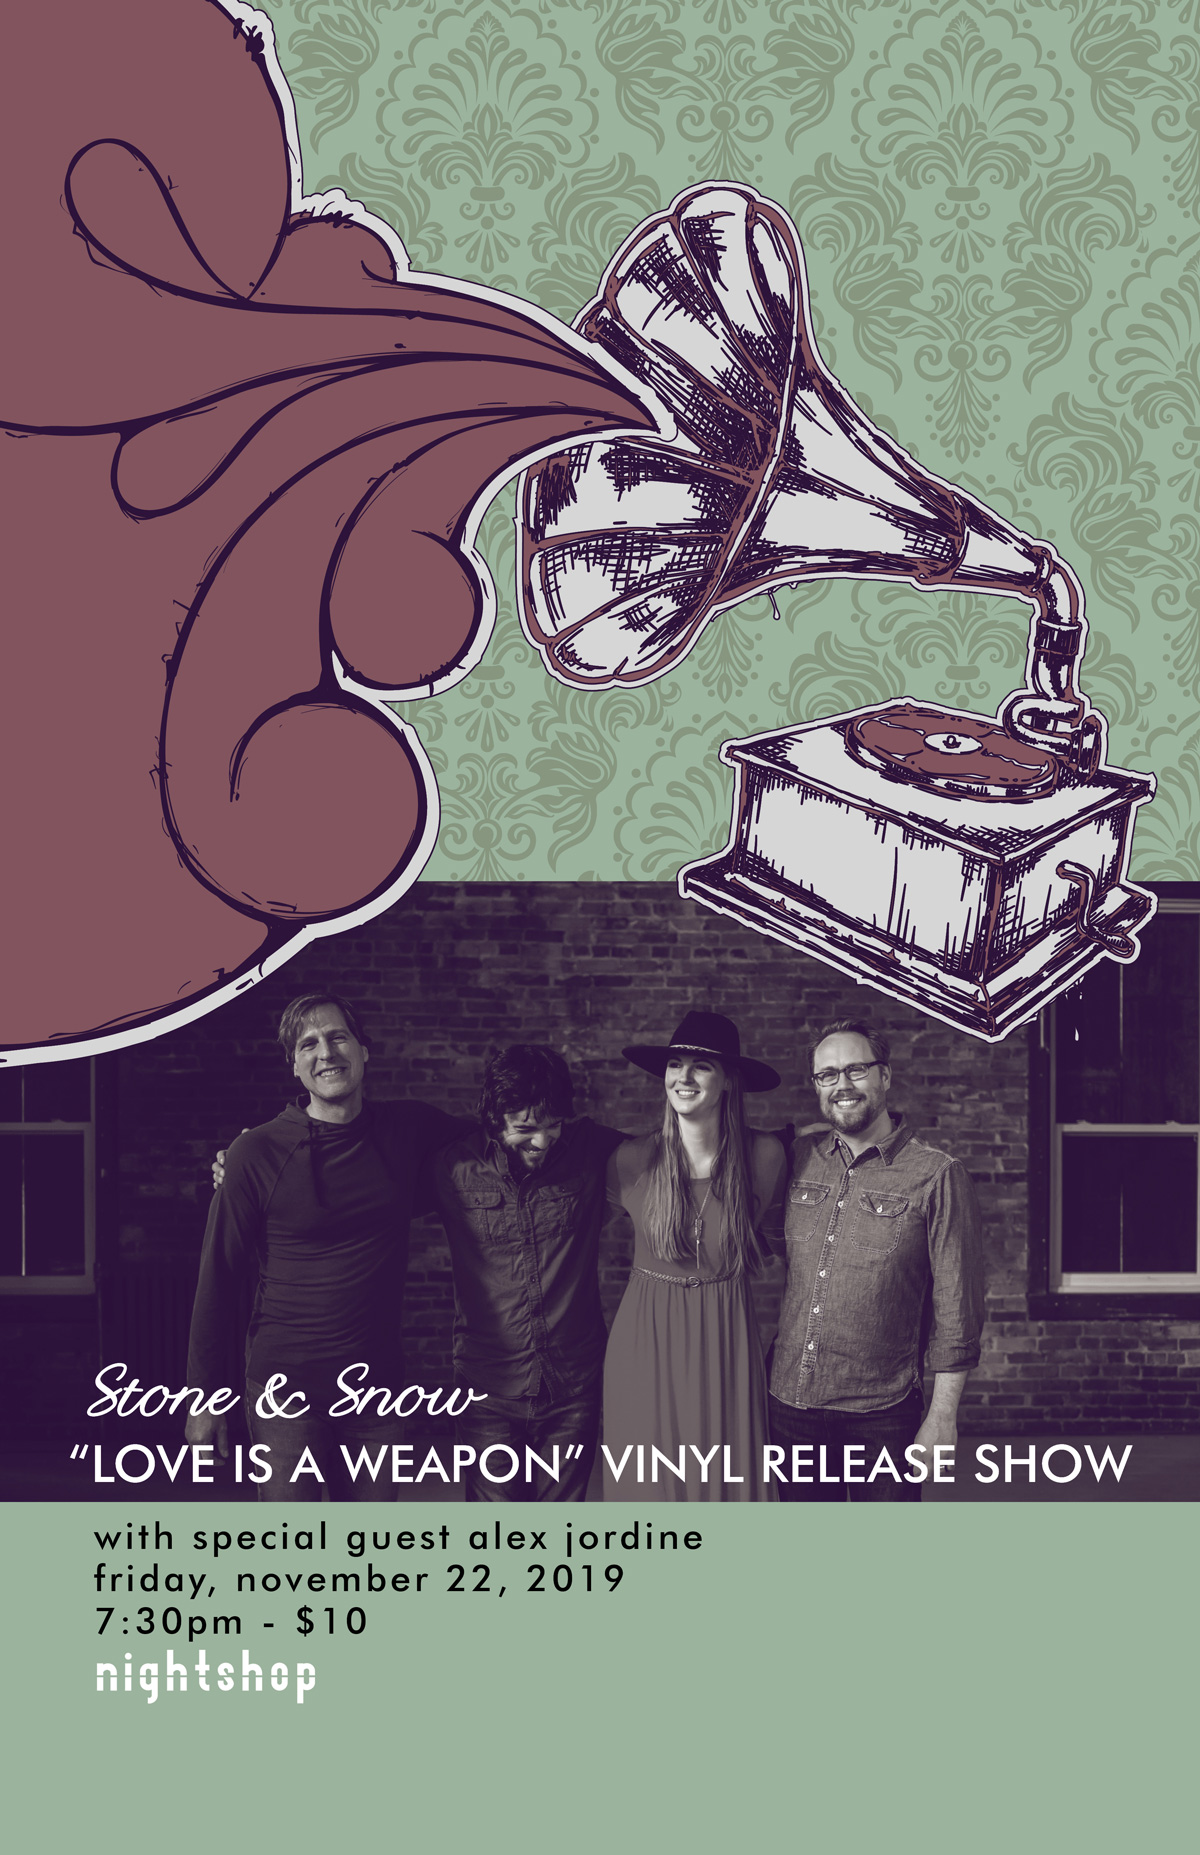 Love is a Weapon Vinyl Release Show Poster